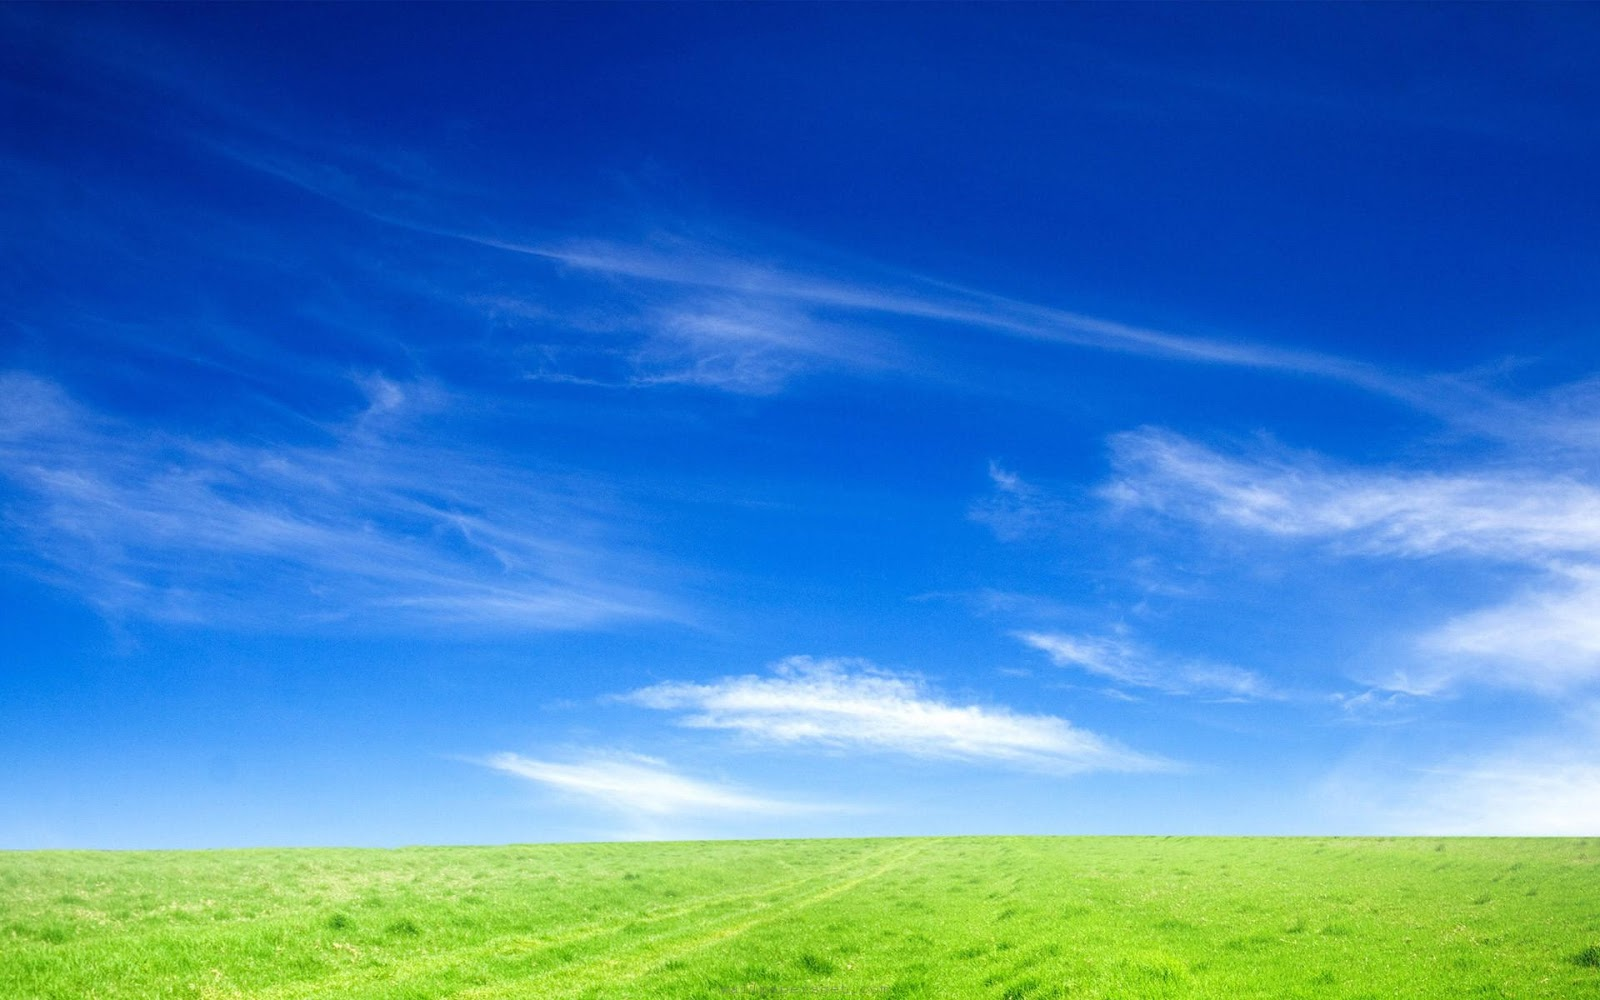 Blue Nature Background Images wallpapers join